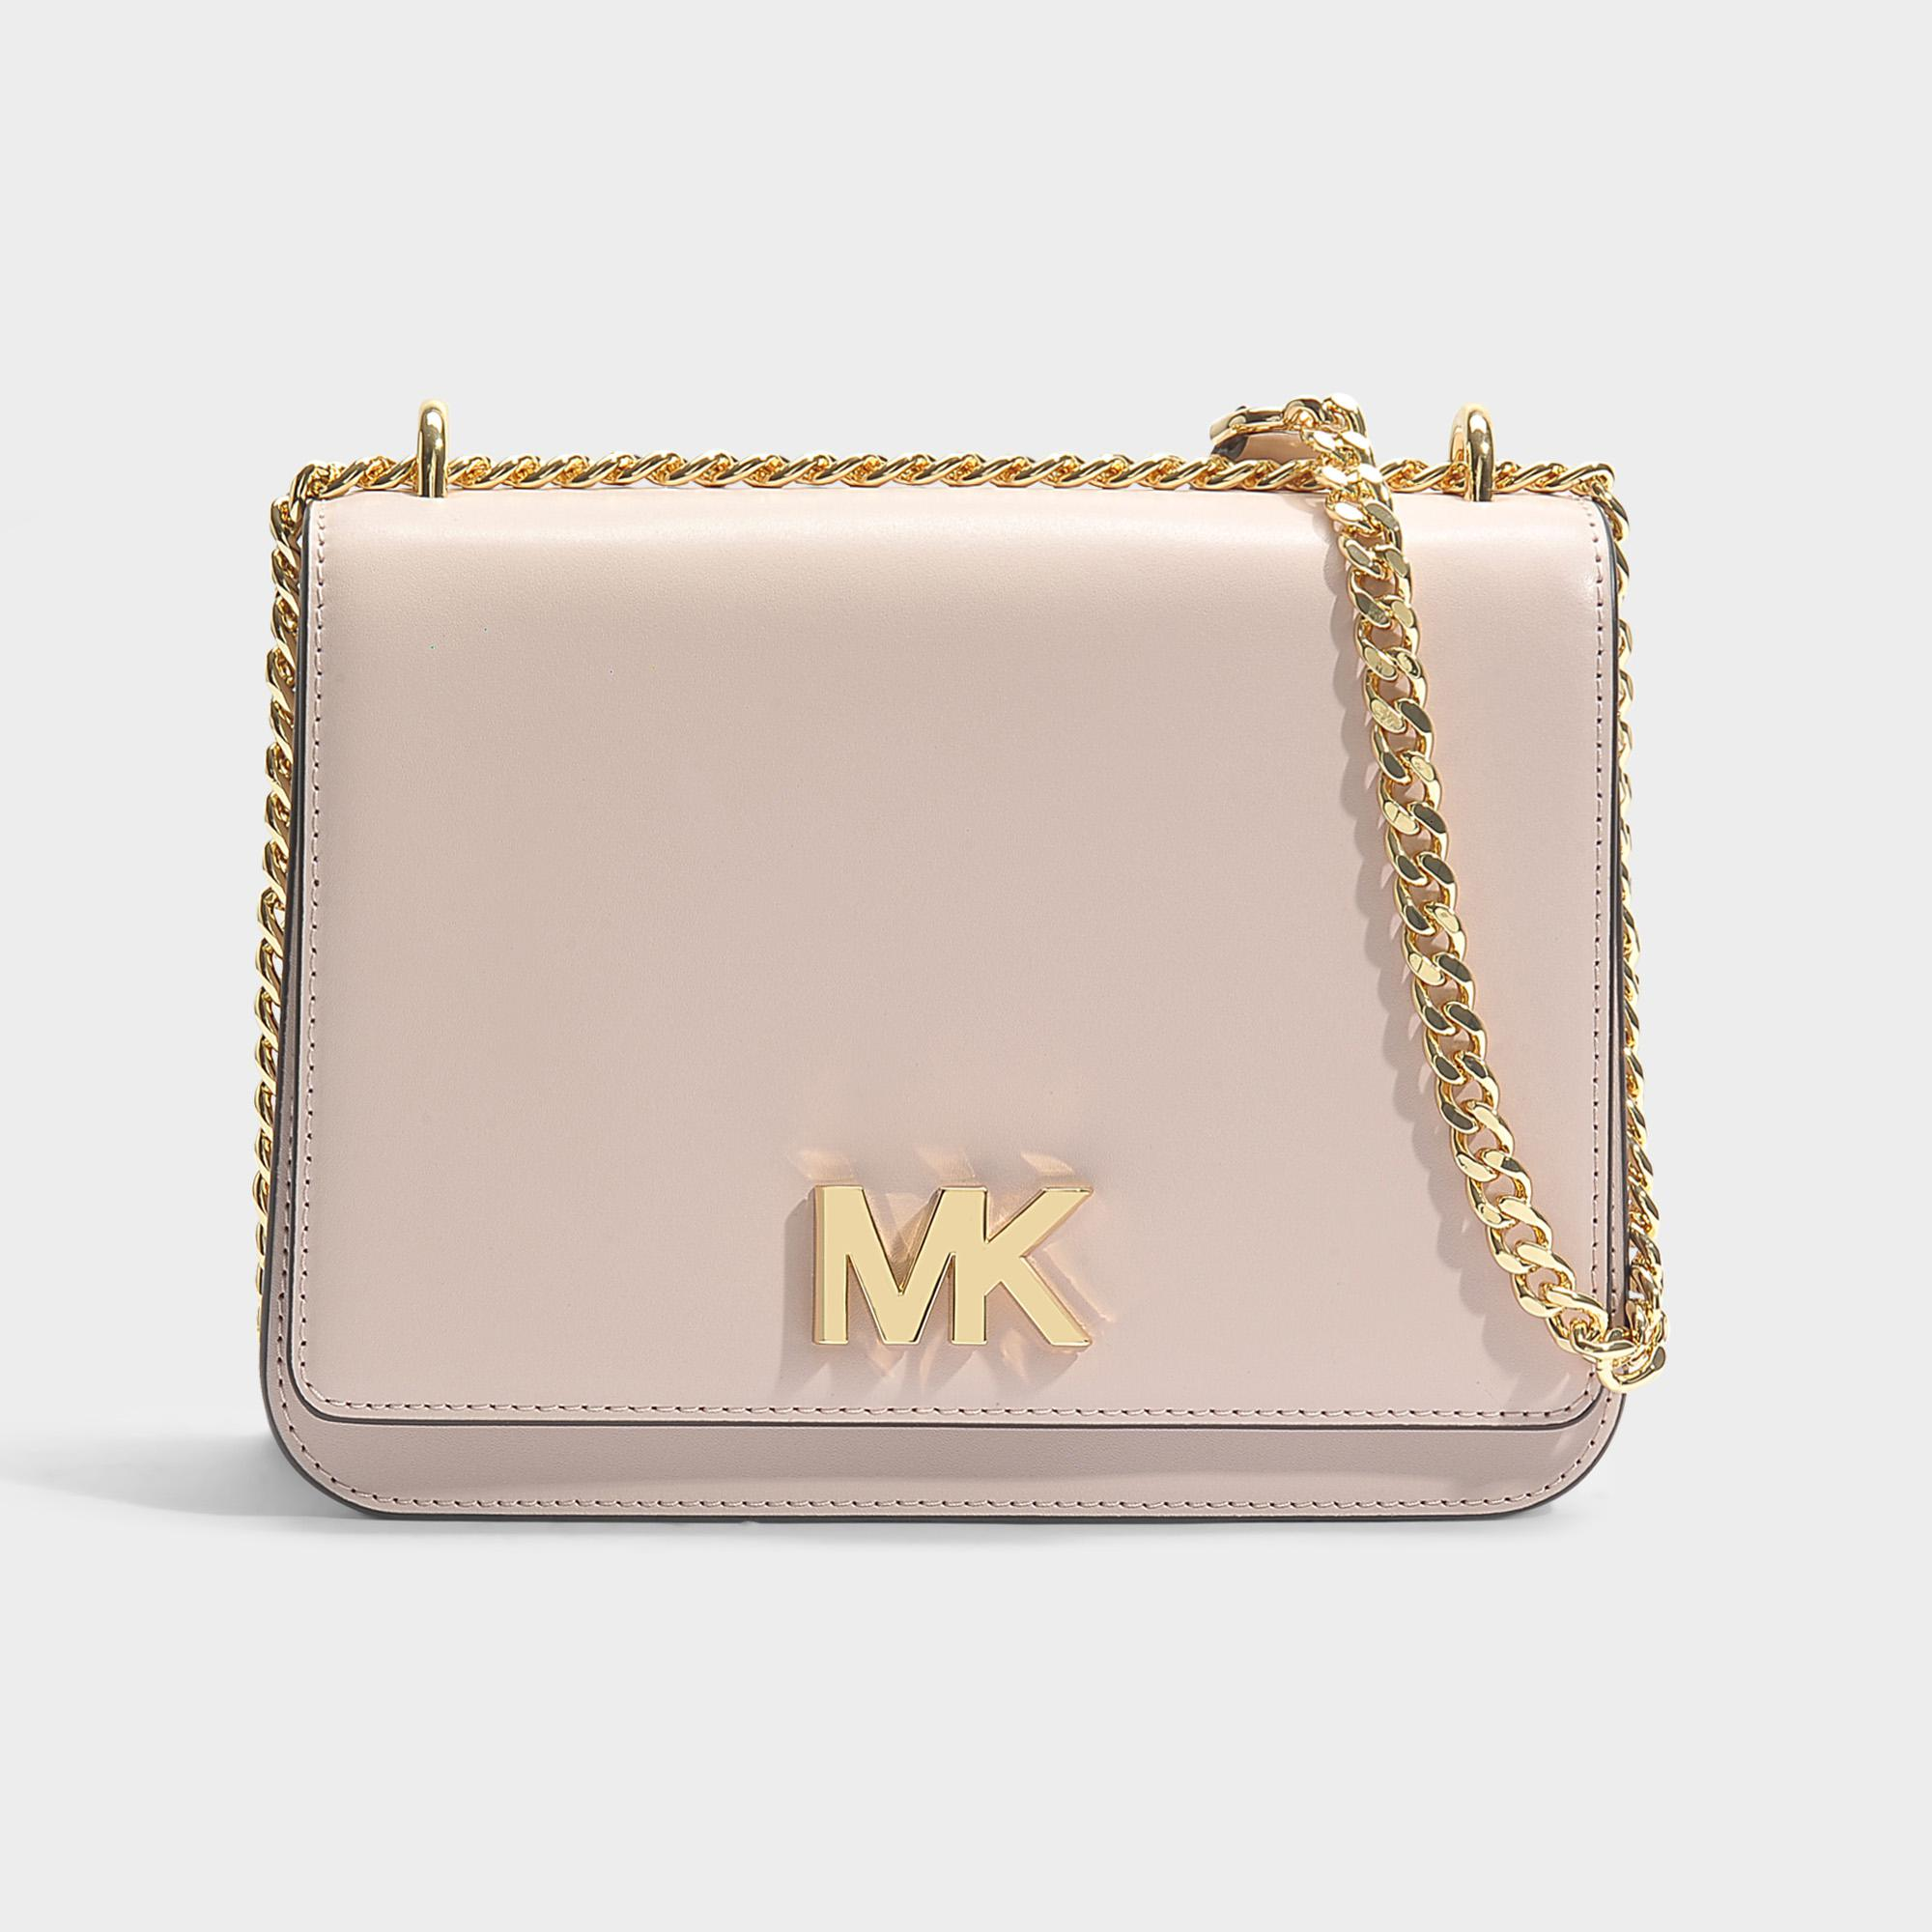 Mott Large Chain Shoulder Bag in Soft Pink Liberty Leather Michael Michael Kors 0VD38R4W